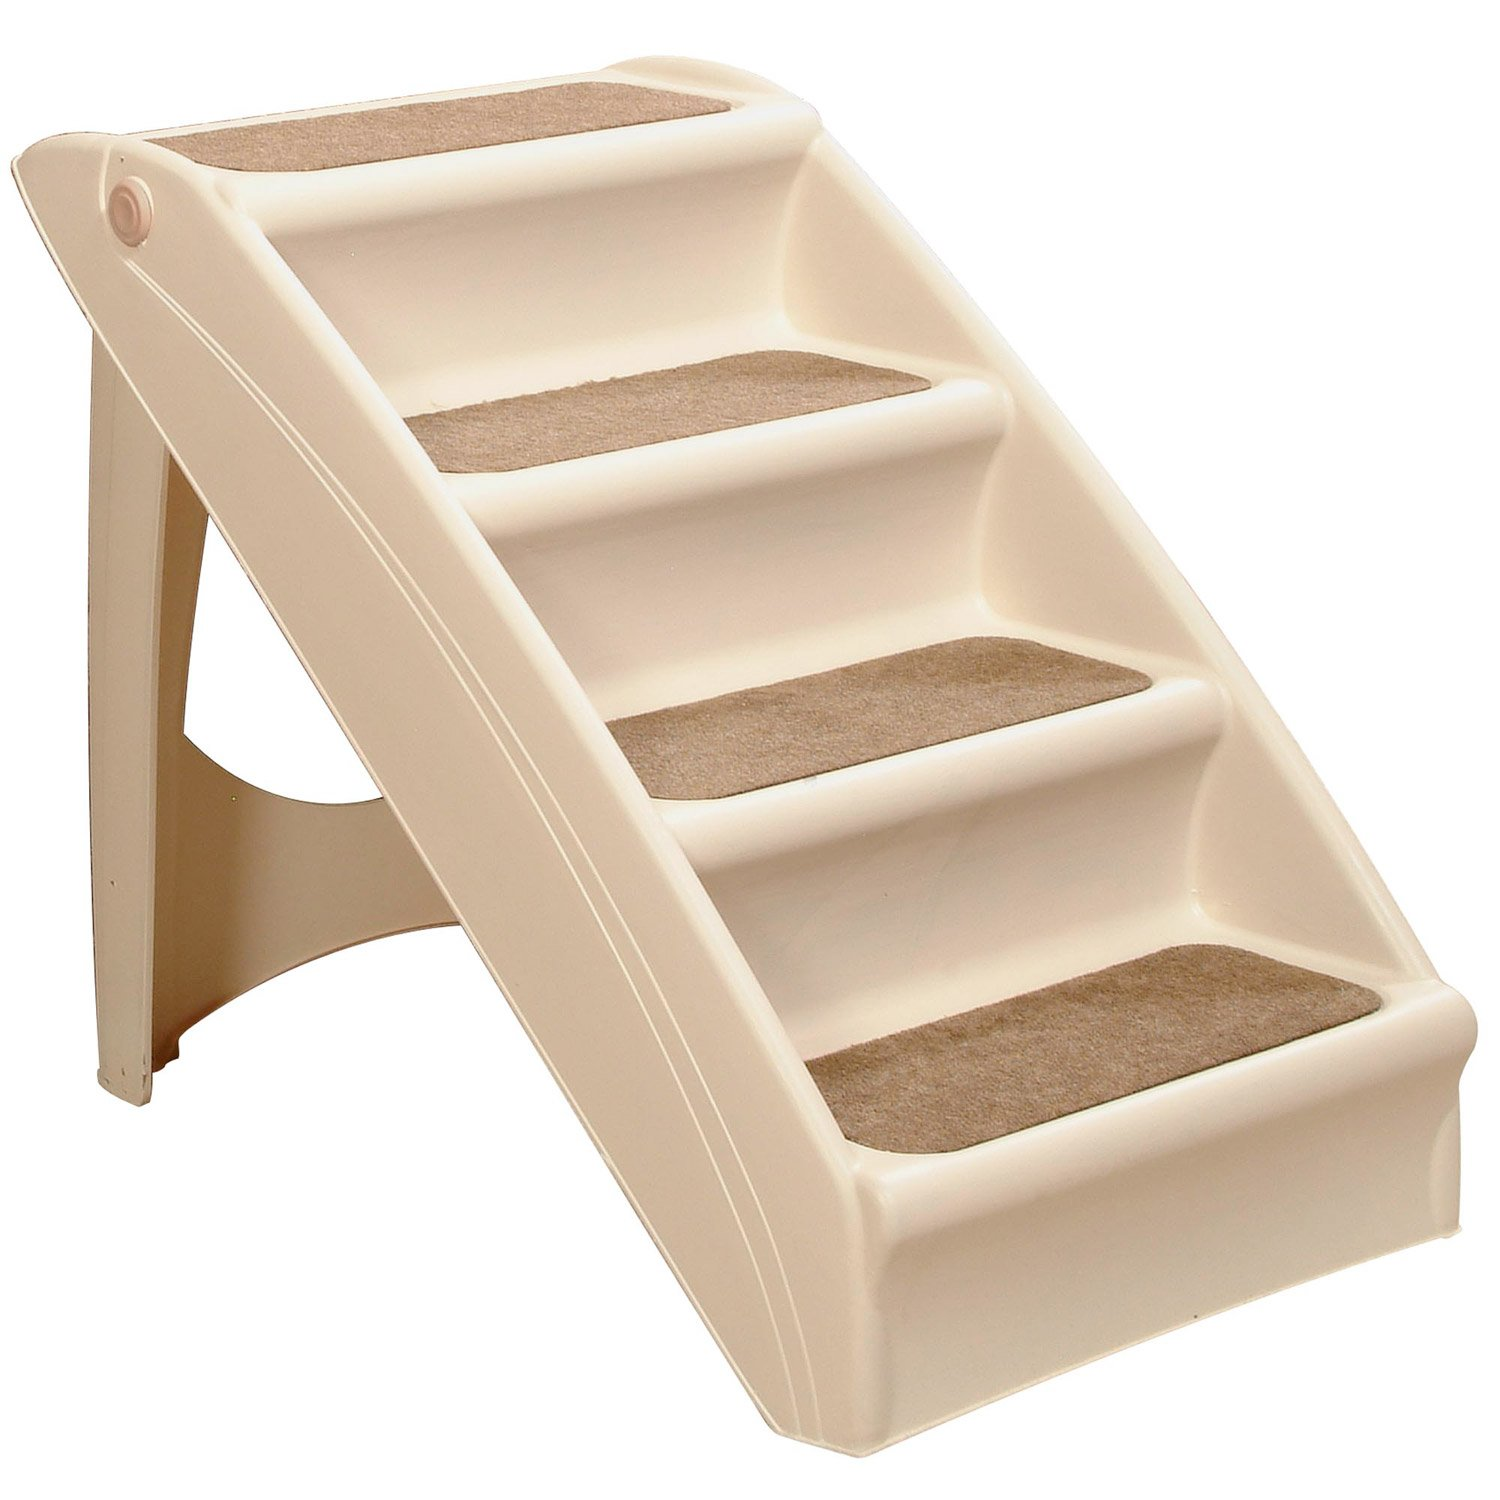 Genial Solvit PupSTEP + Plus Pet Stairs | Petco